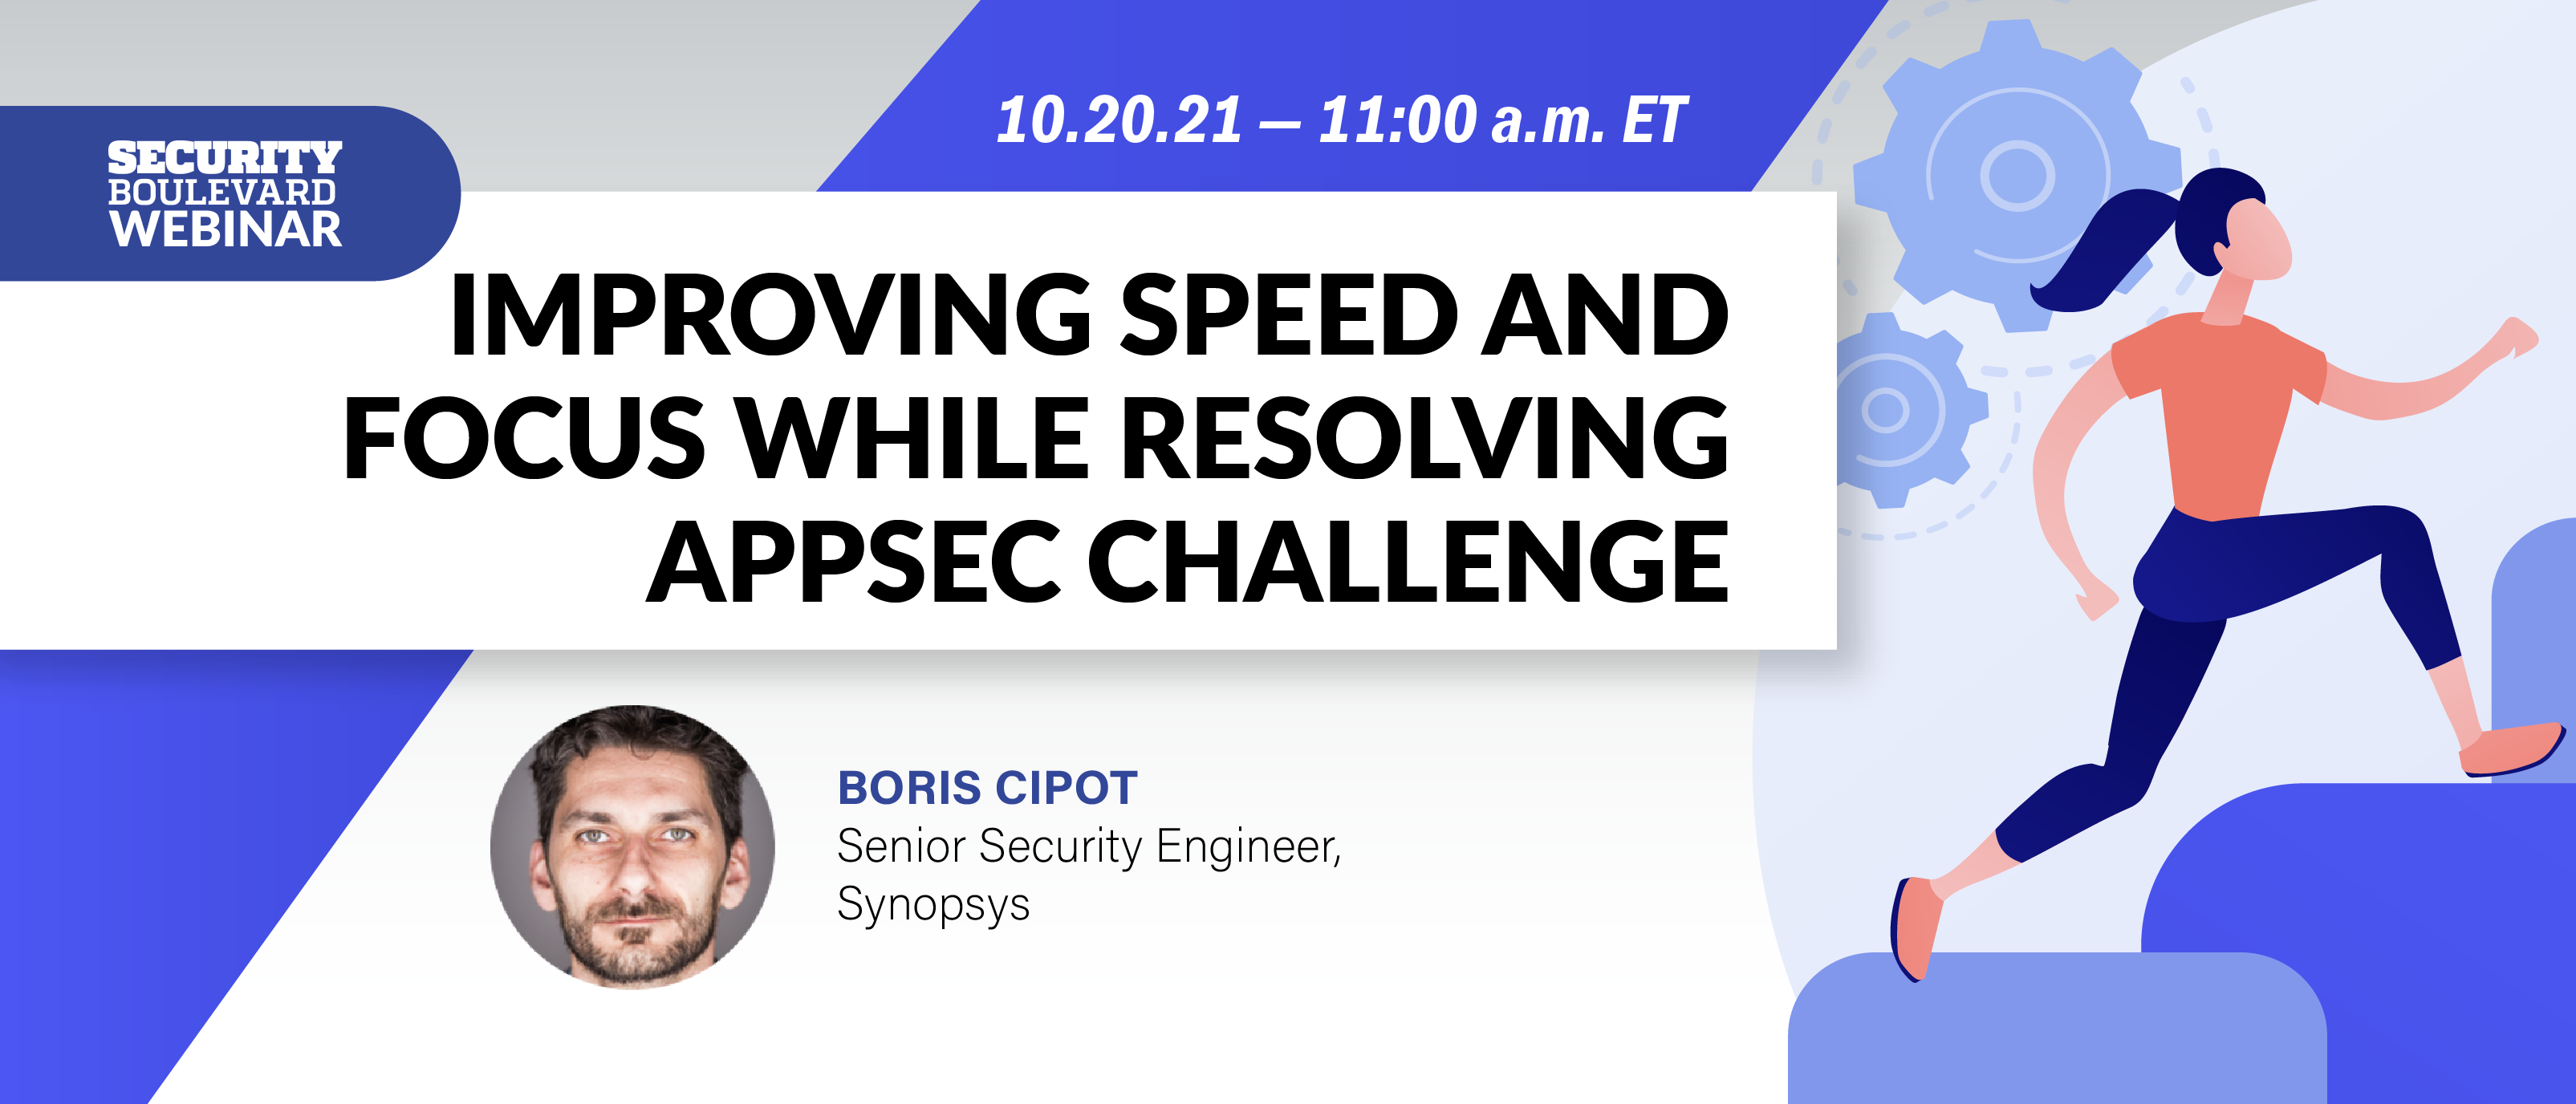 Improving Speed and Focus While Resolving AppSec Challenge